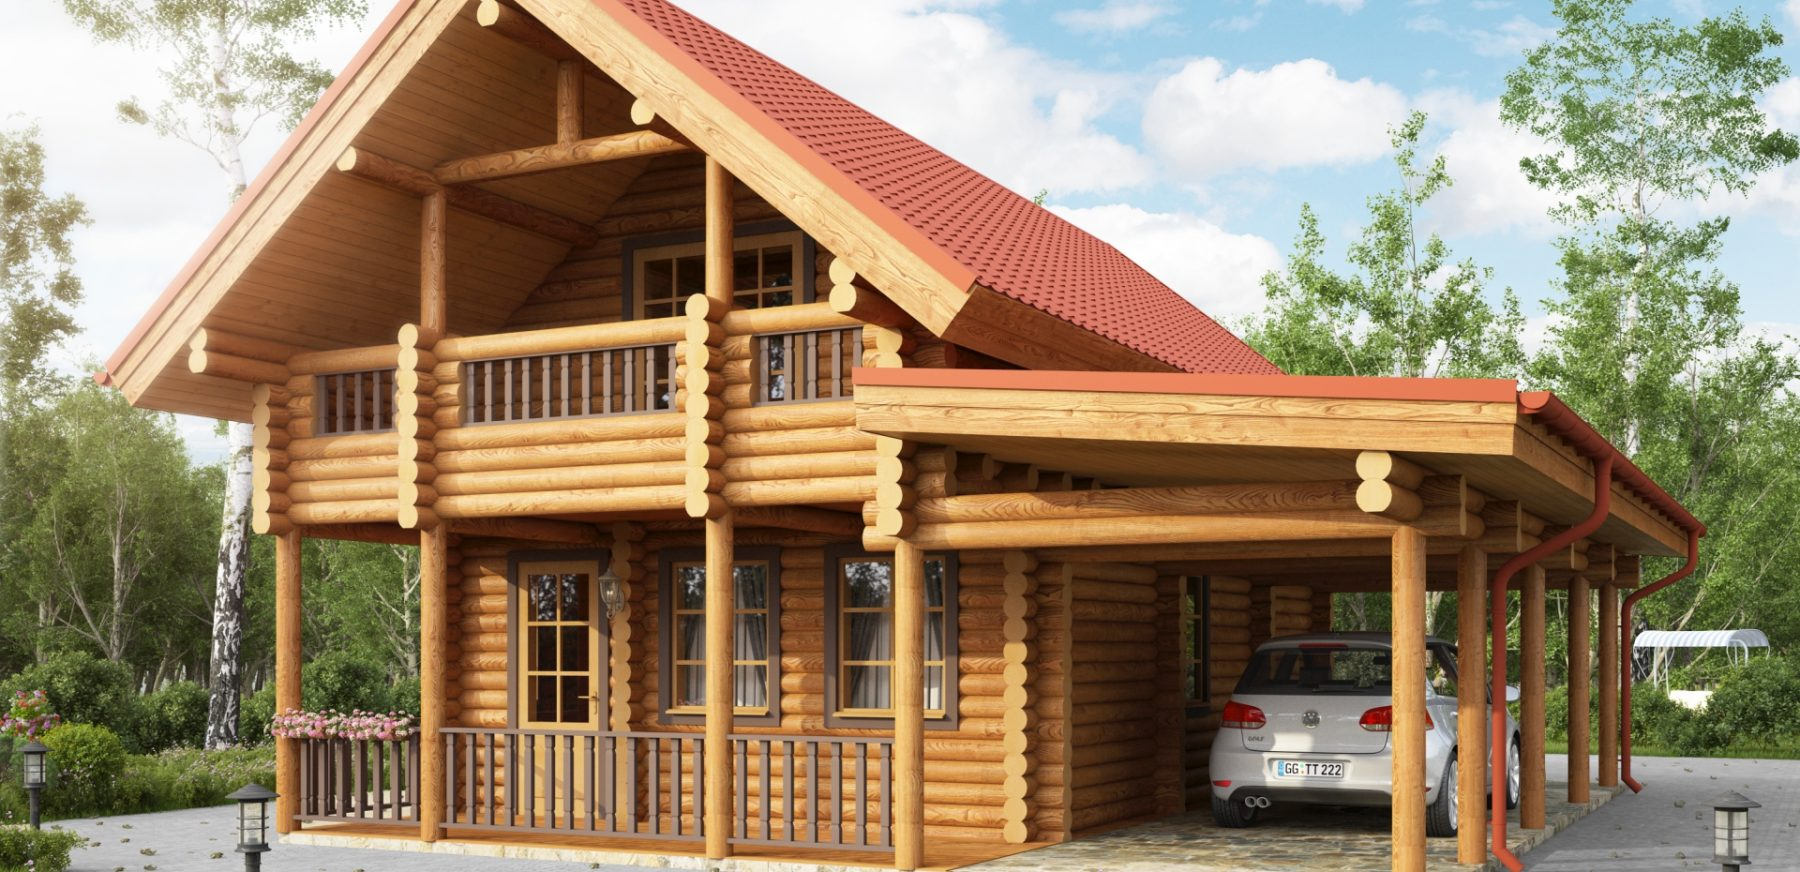 Residential Cabin - PERTSHIRE